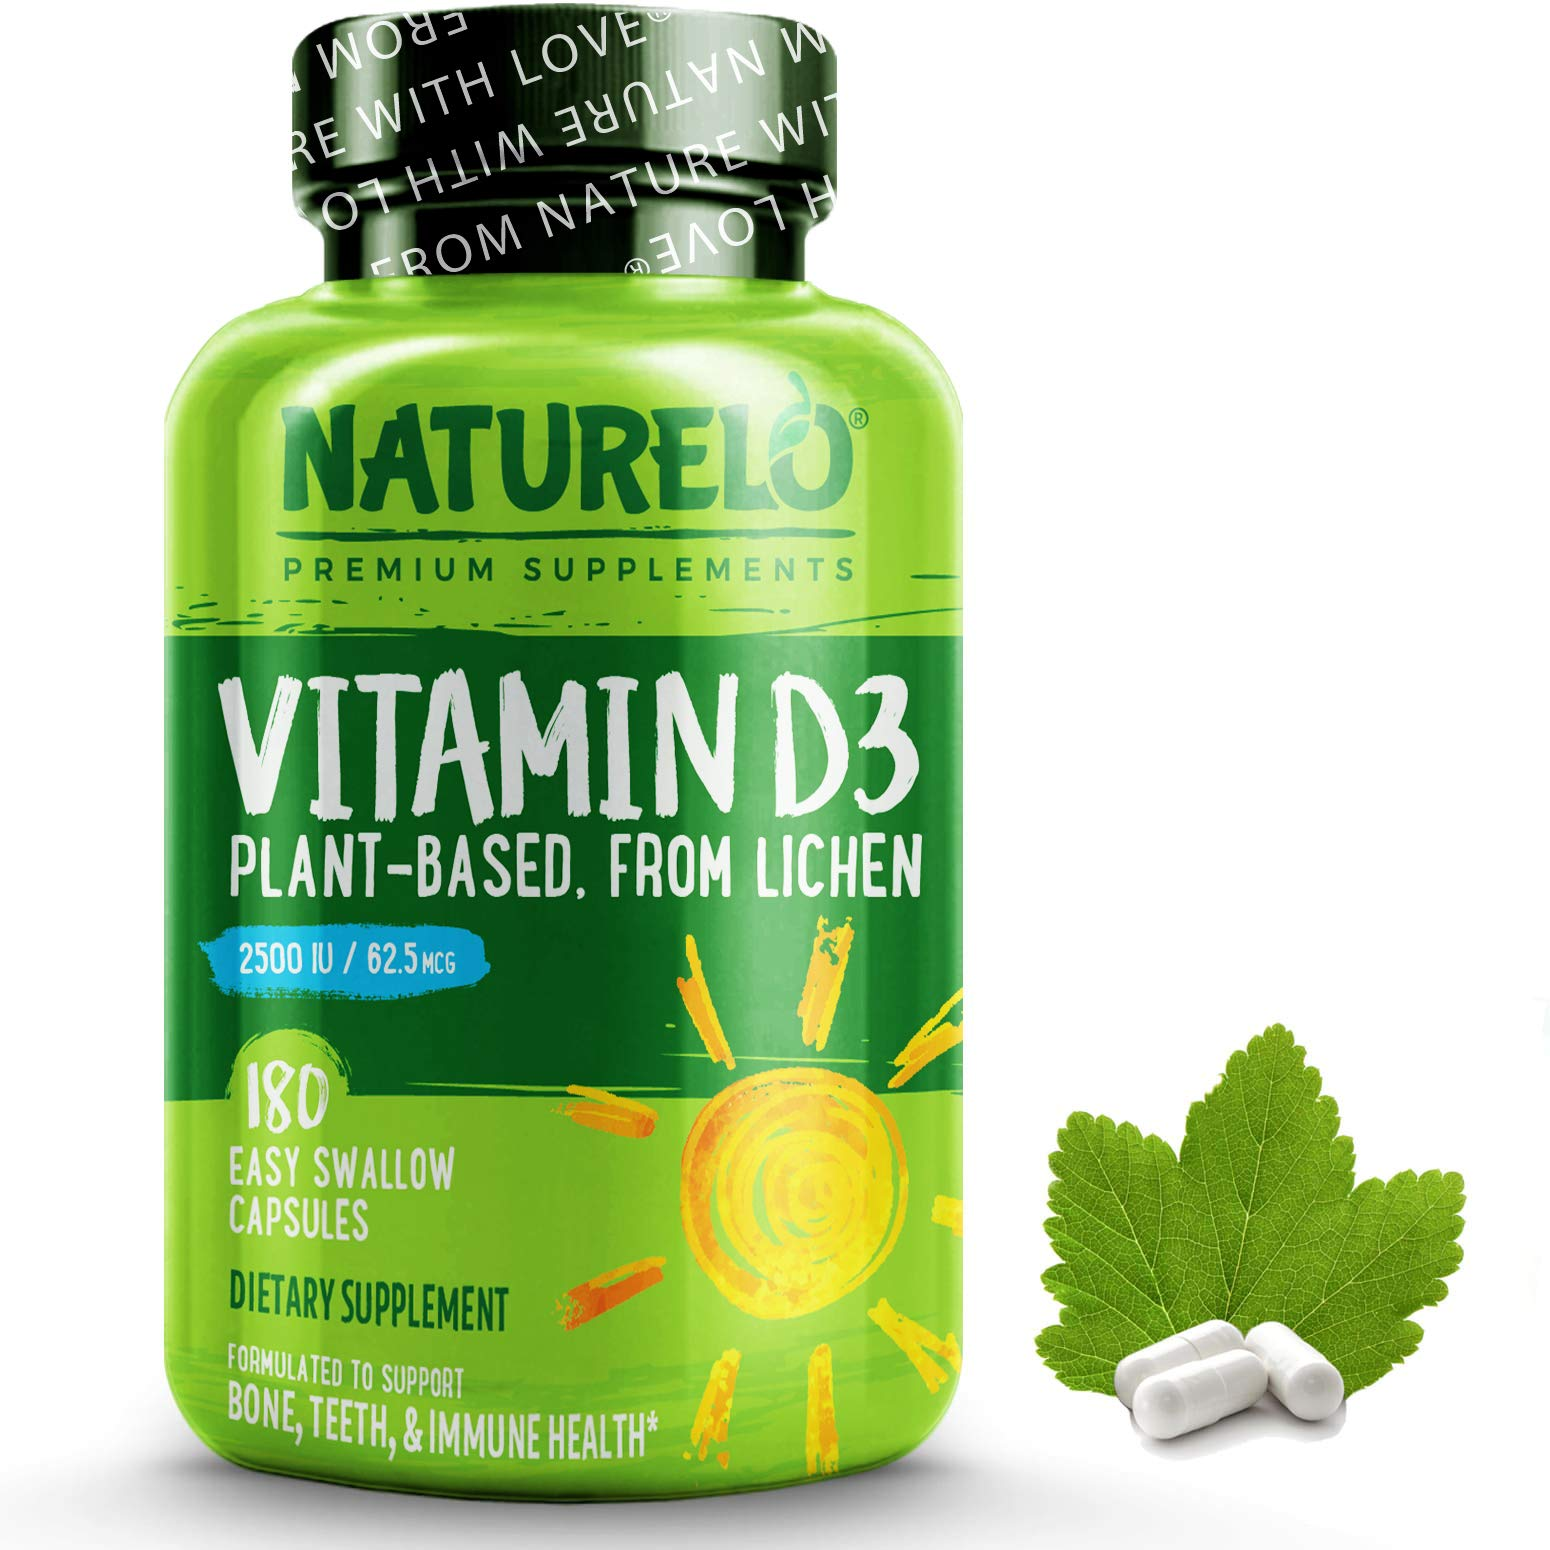 NATURELO Vitamin D - 2500 IU (62.5mcg) - Plant Based from Lichen - Natural D3 Supplement for Immune System, Bone Support, Joint Health - Non-GMO Gluten-Free - 180 Vegan Mini Capsules | 6 Month Supply